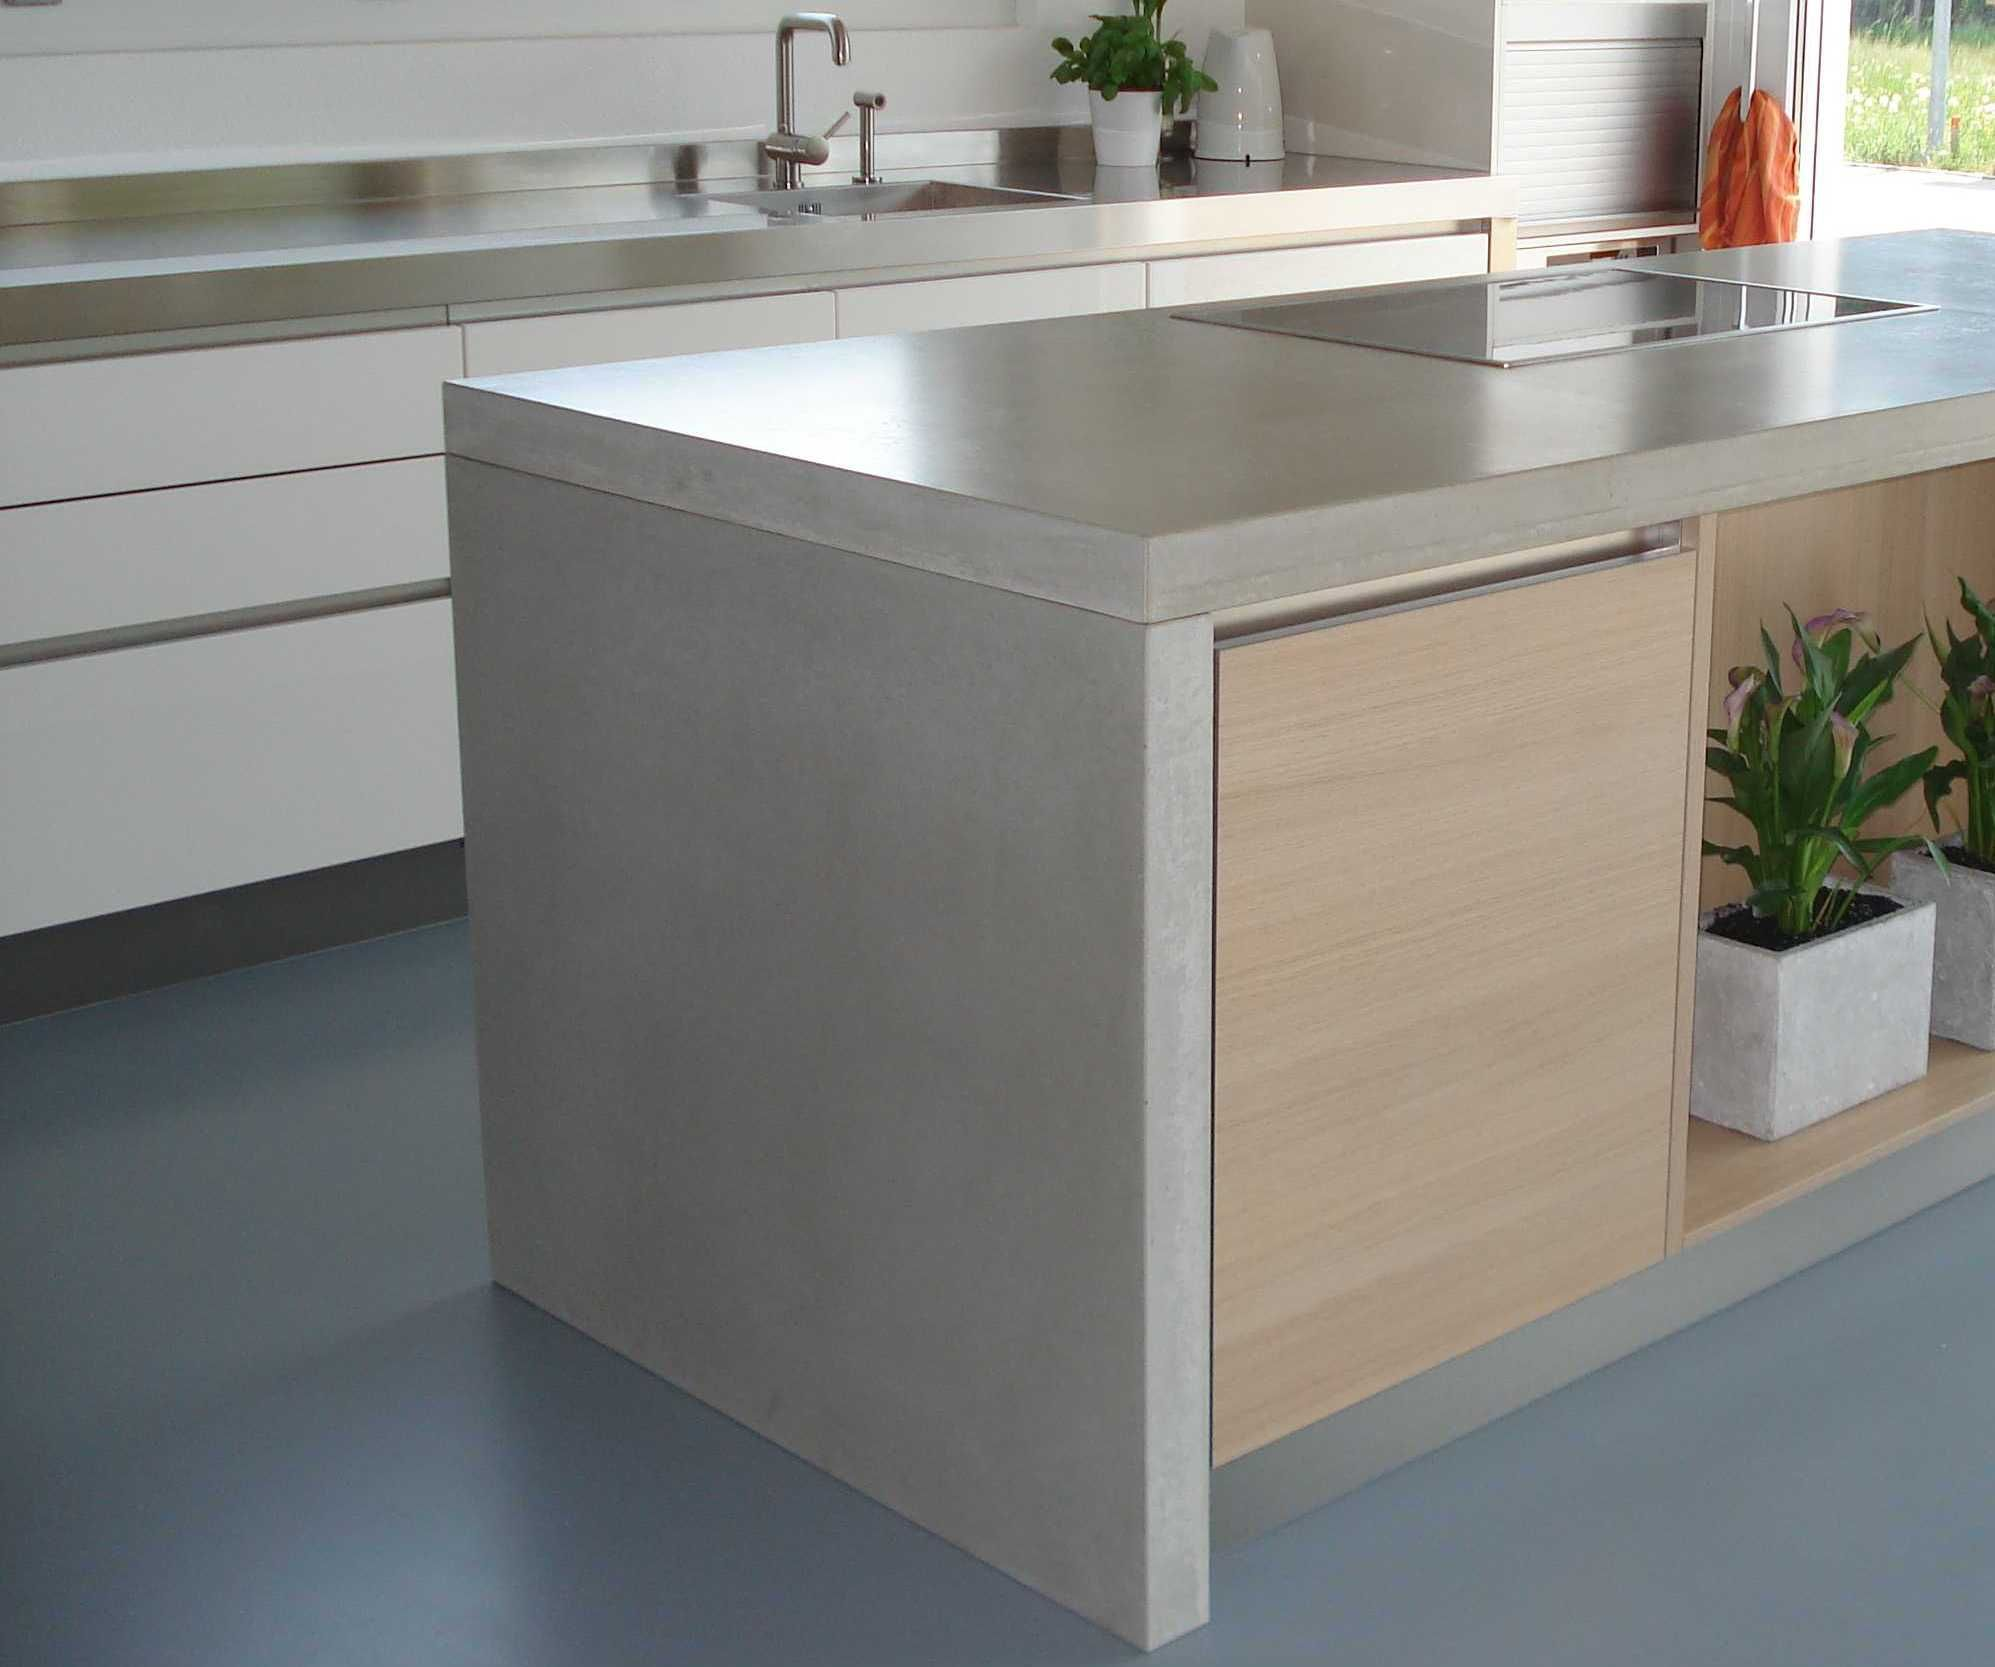 White Cabinet With Chrome Long Handles And Stainless Steel